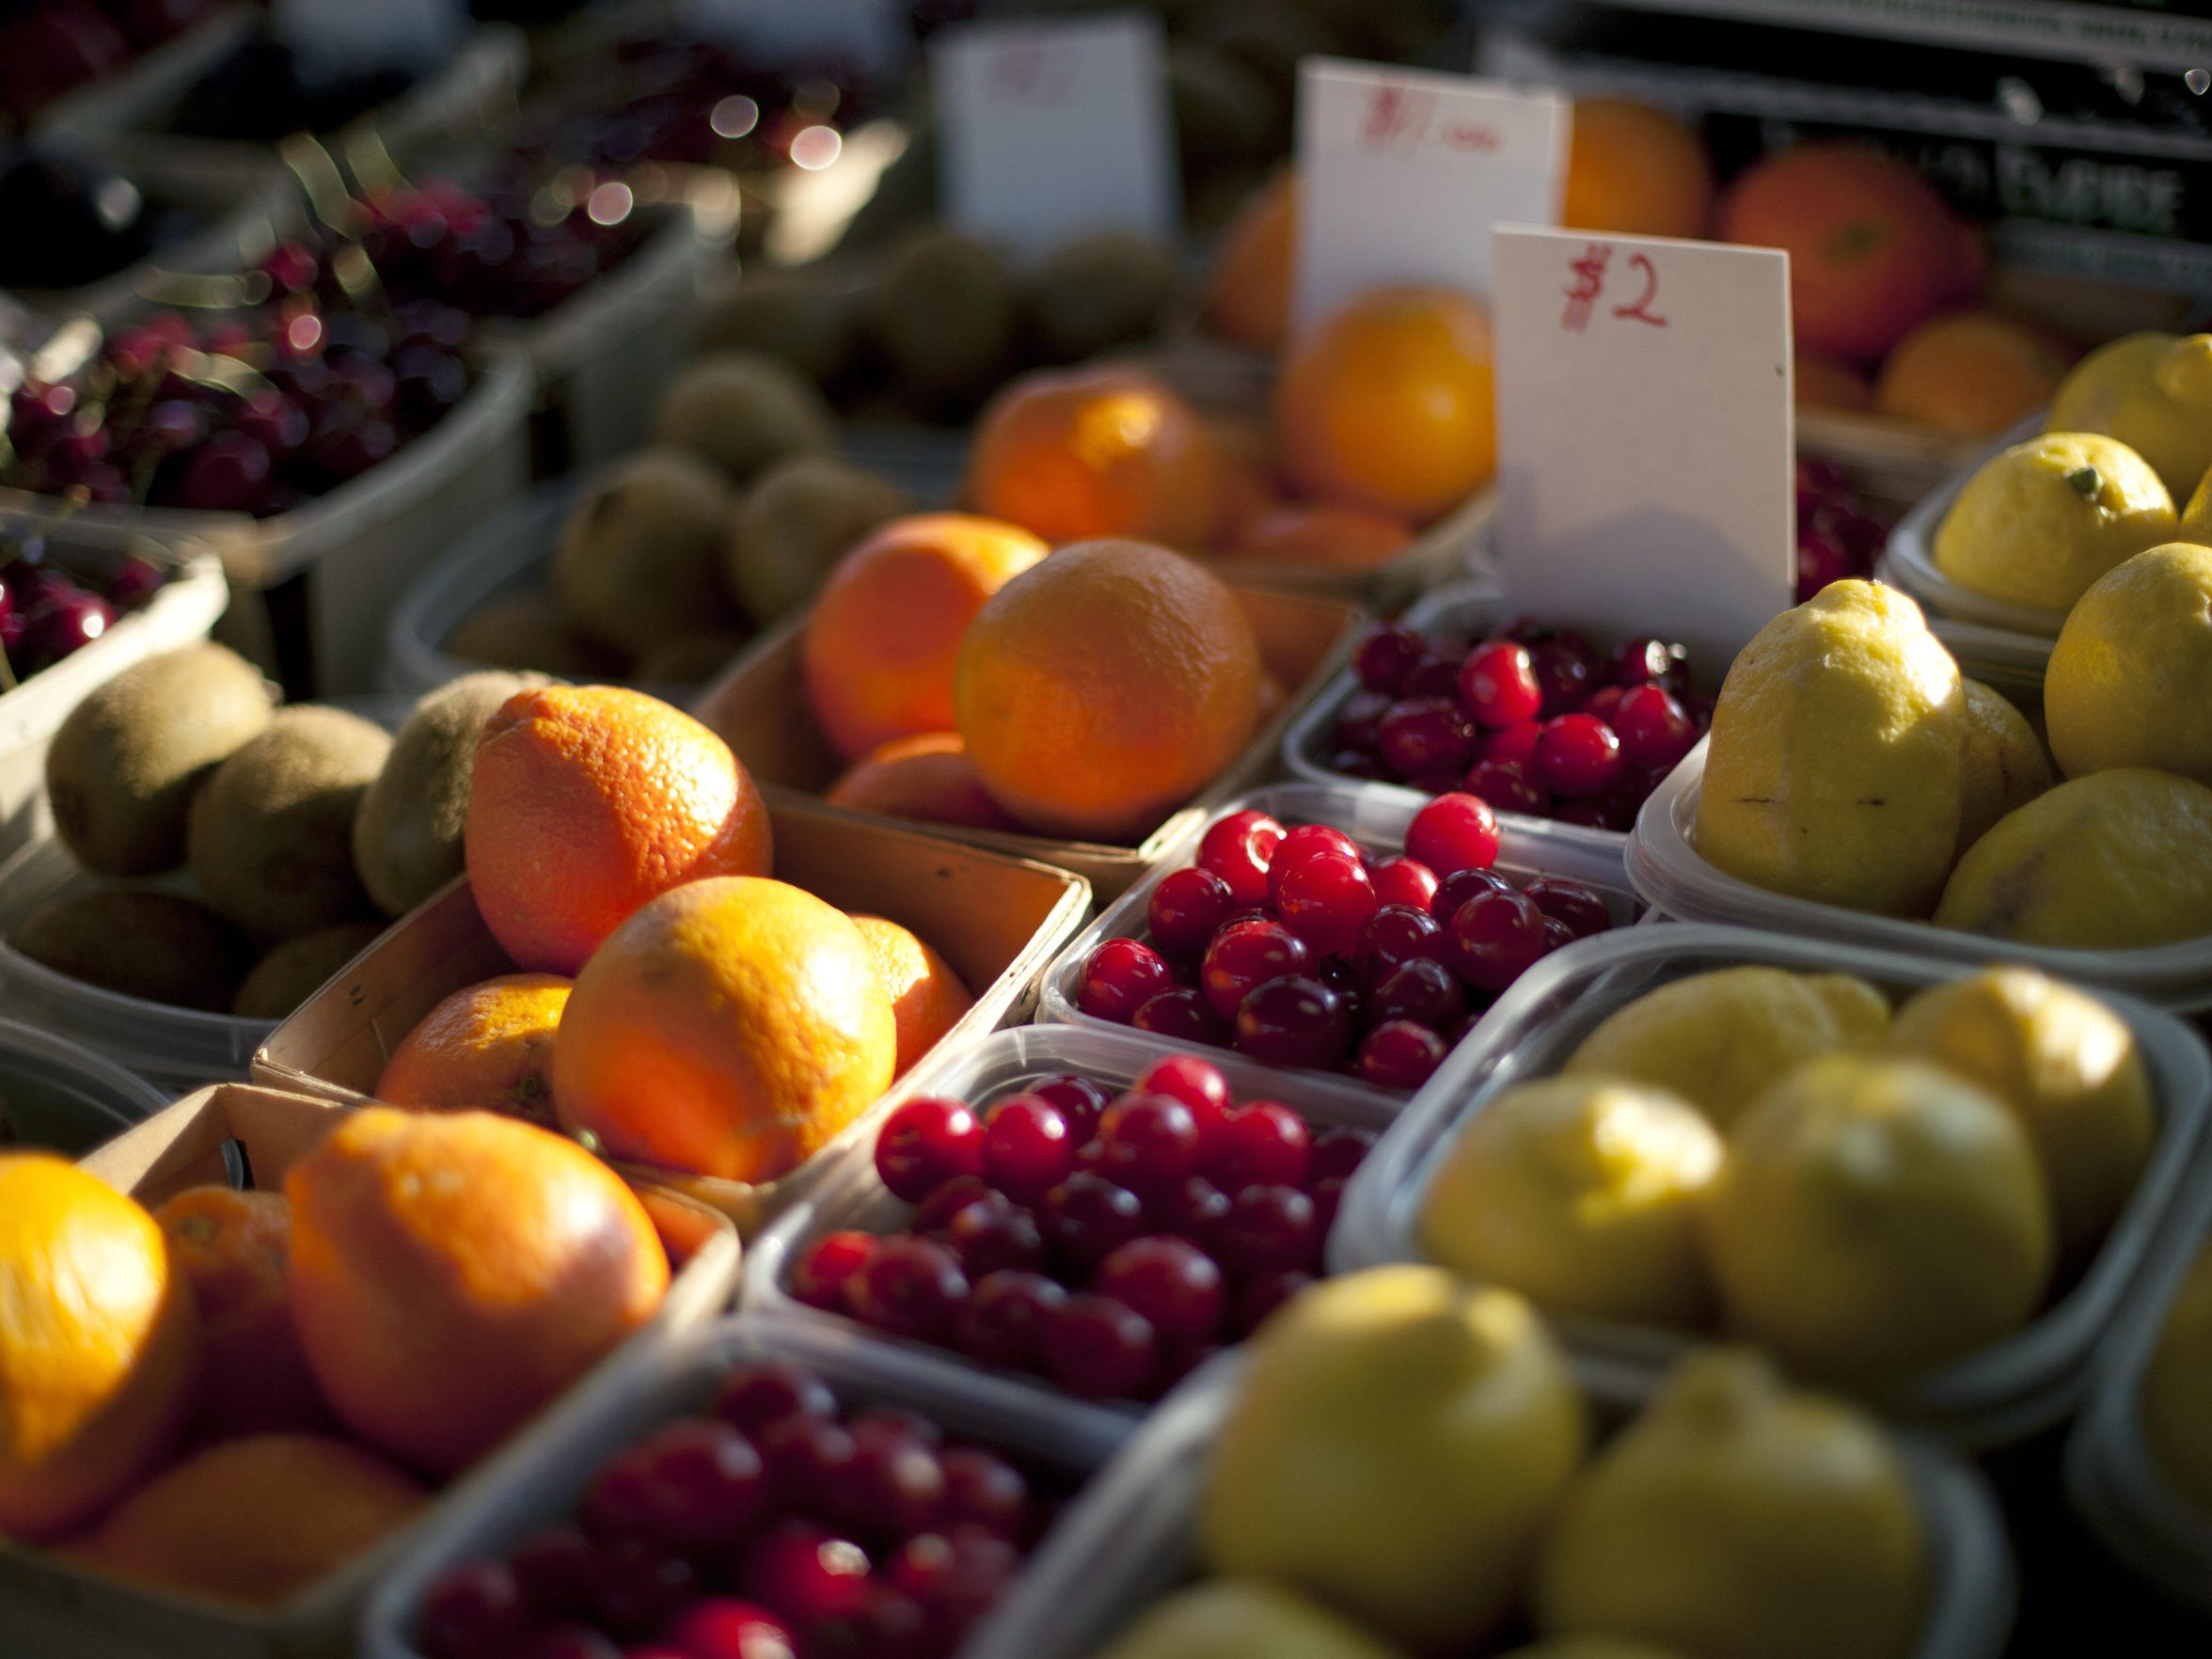 The Rochester Public Market is one of many locations where seniors may use coupon books distributed through the Senior Farmers Market Nutrition Program.